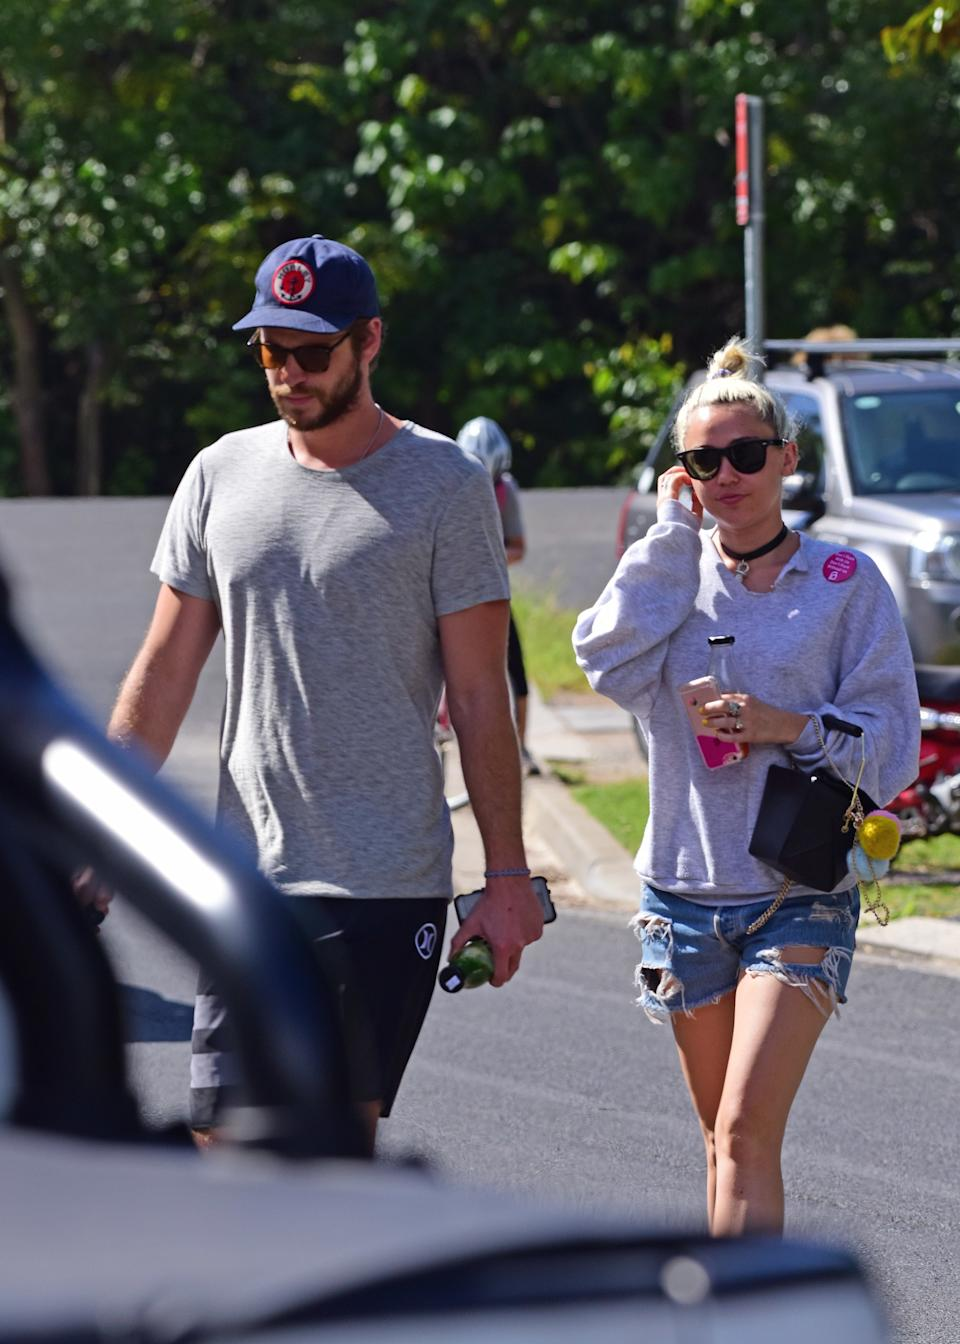 "<h1 class=""title"">Liam Hemsworth and Miley Cyrus Sighting</h1><div class=""caption"">Liam Hemsworth and Miley Cyrus spotted on April 29, 2016 in Byron Bay, Australia.</div><cite class=""credit"">Matrix</cite>"